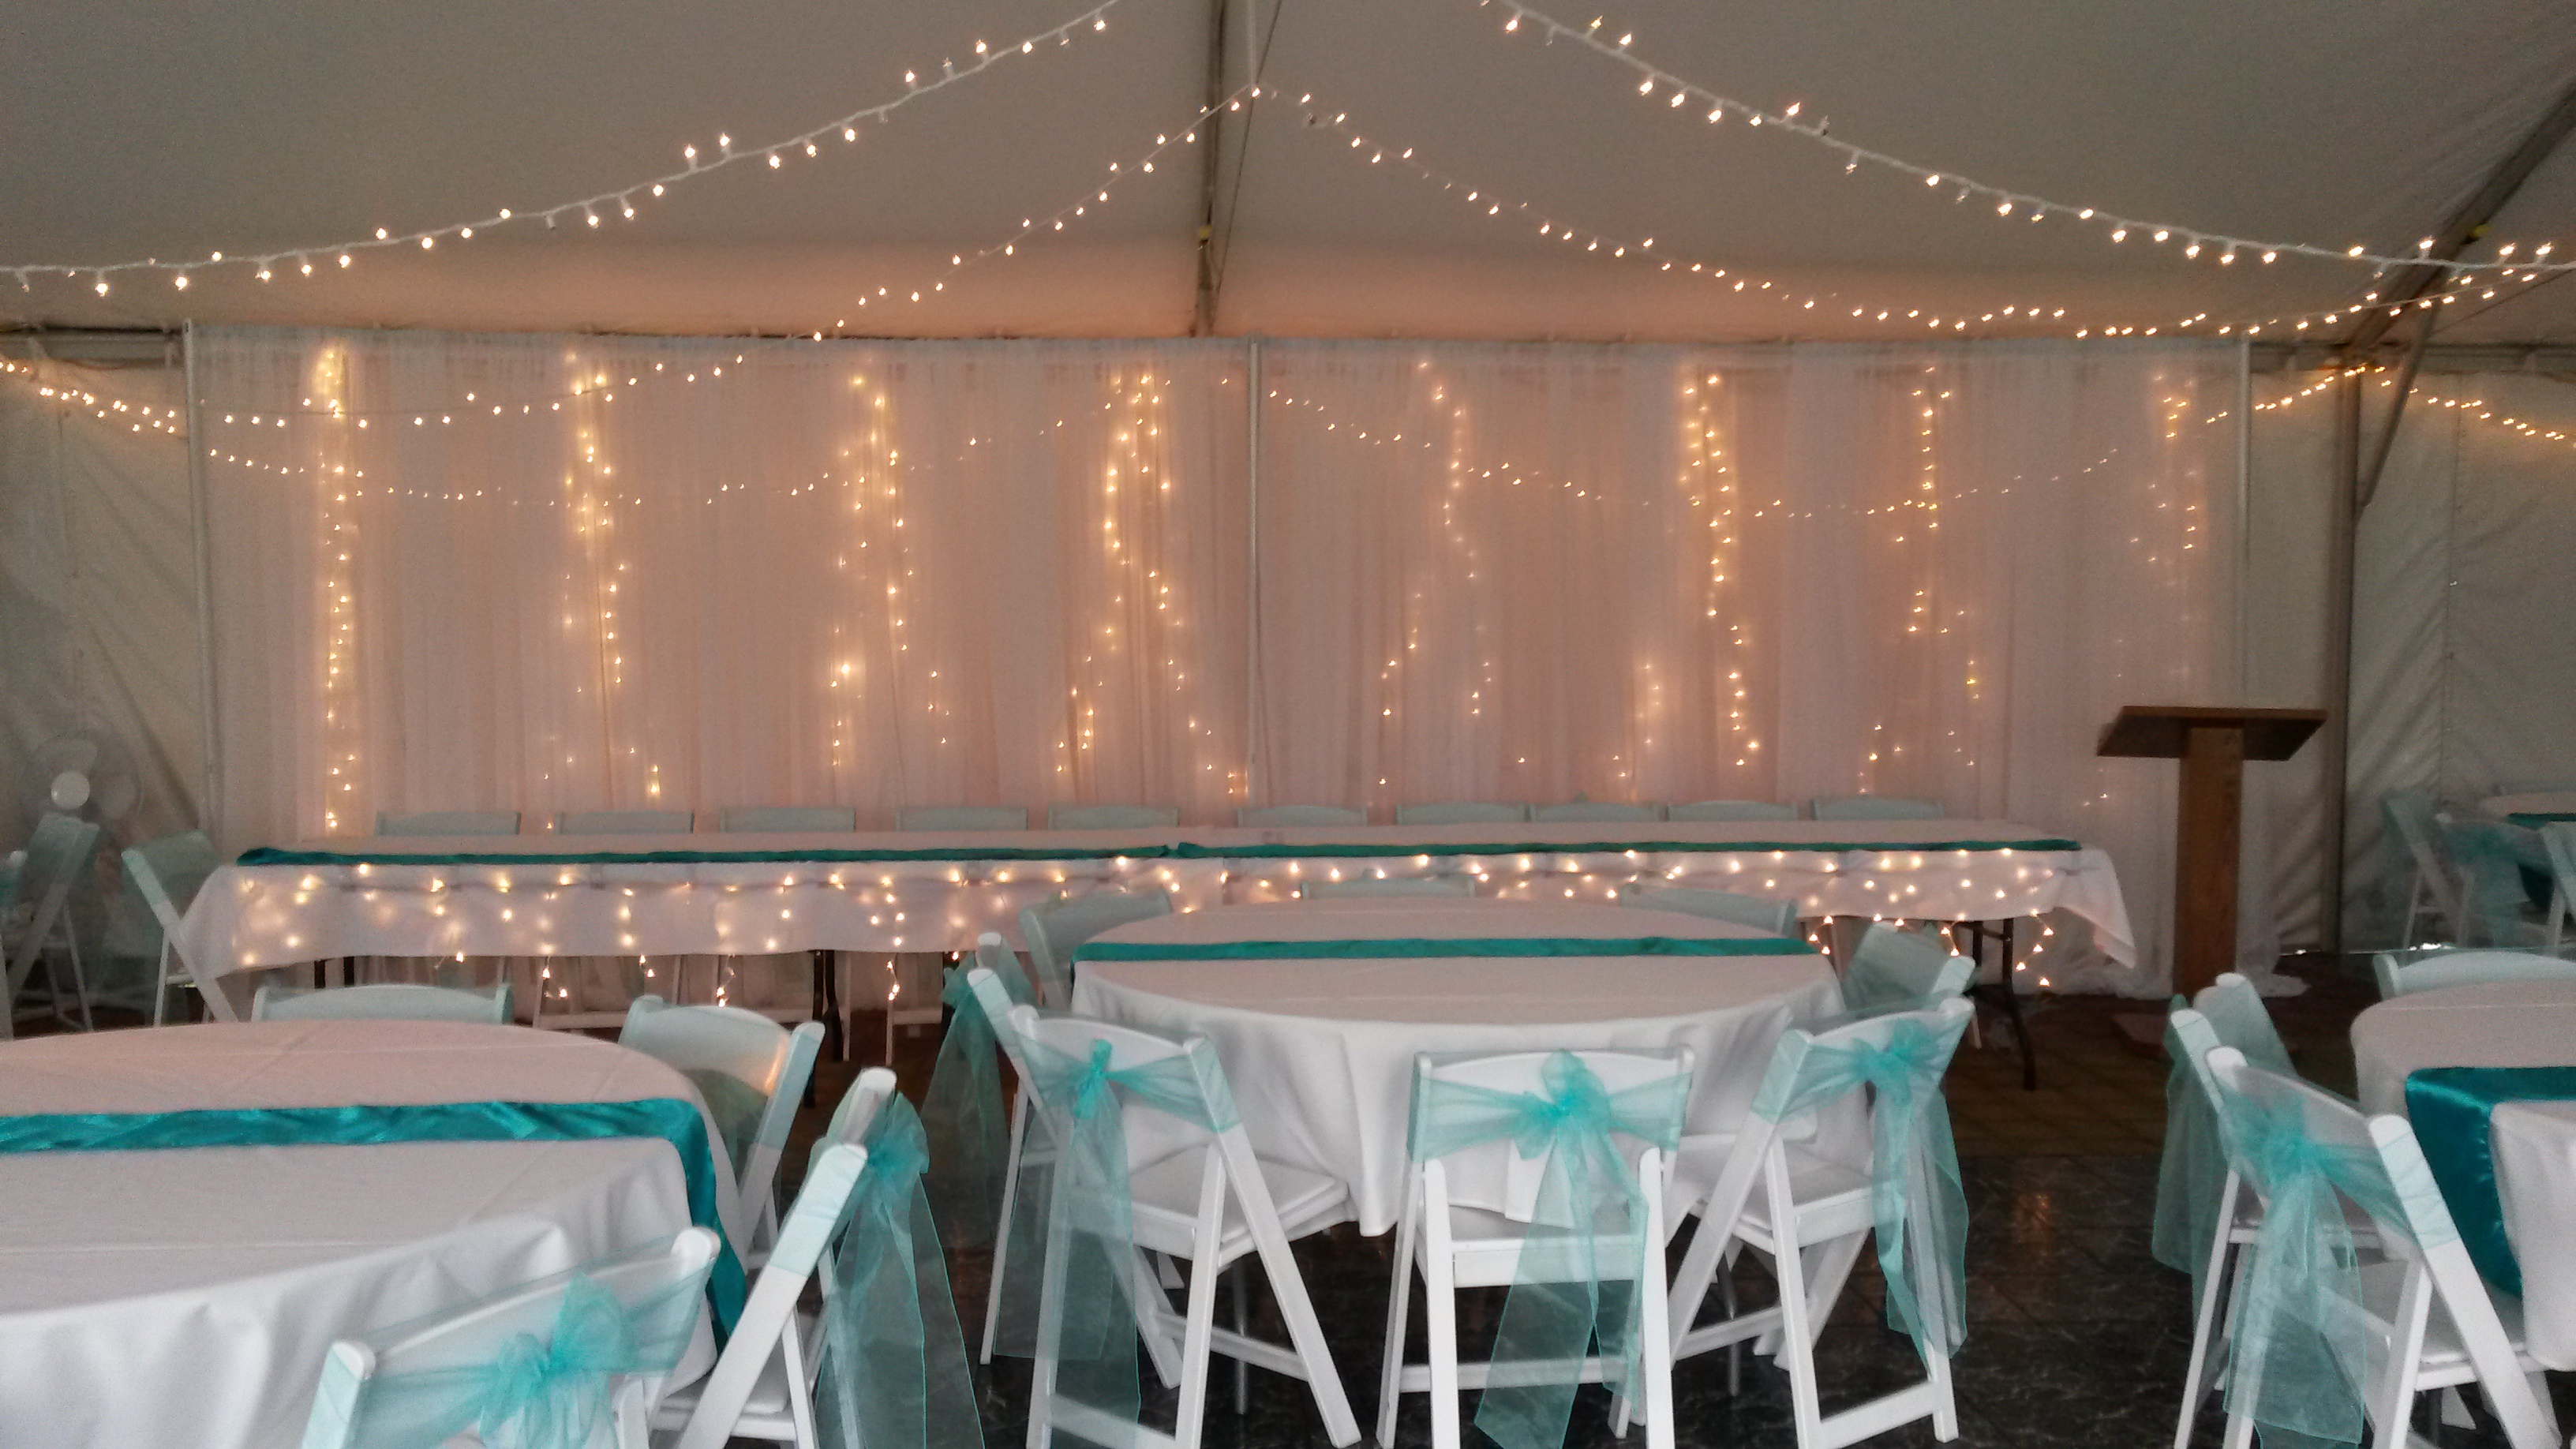 Backdrop with String Lights